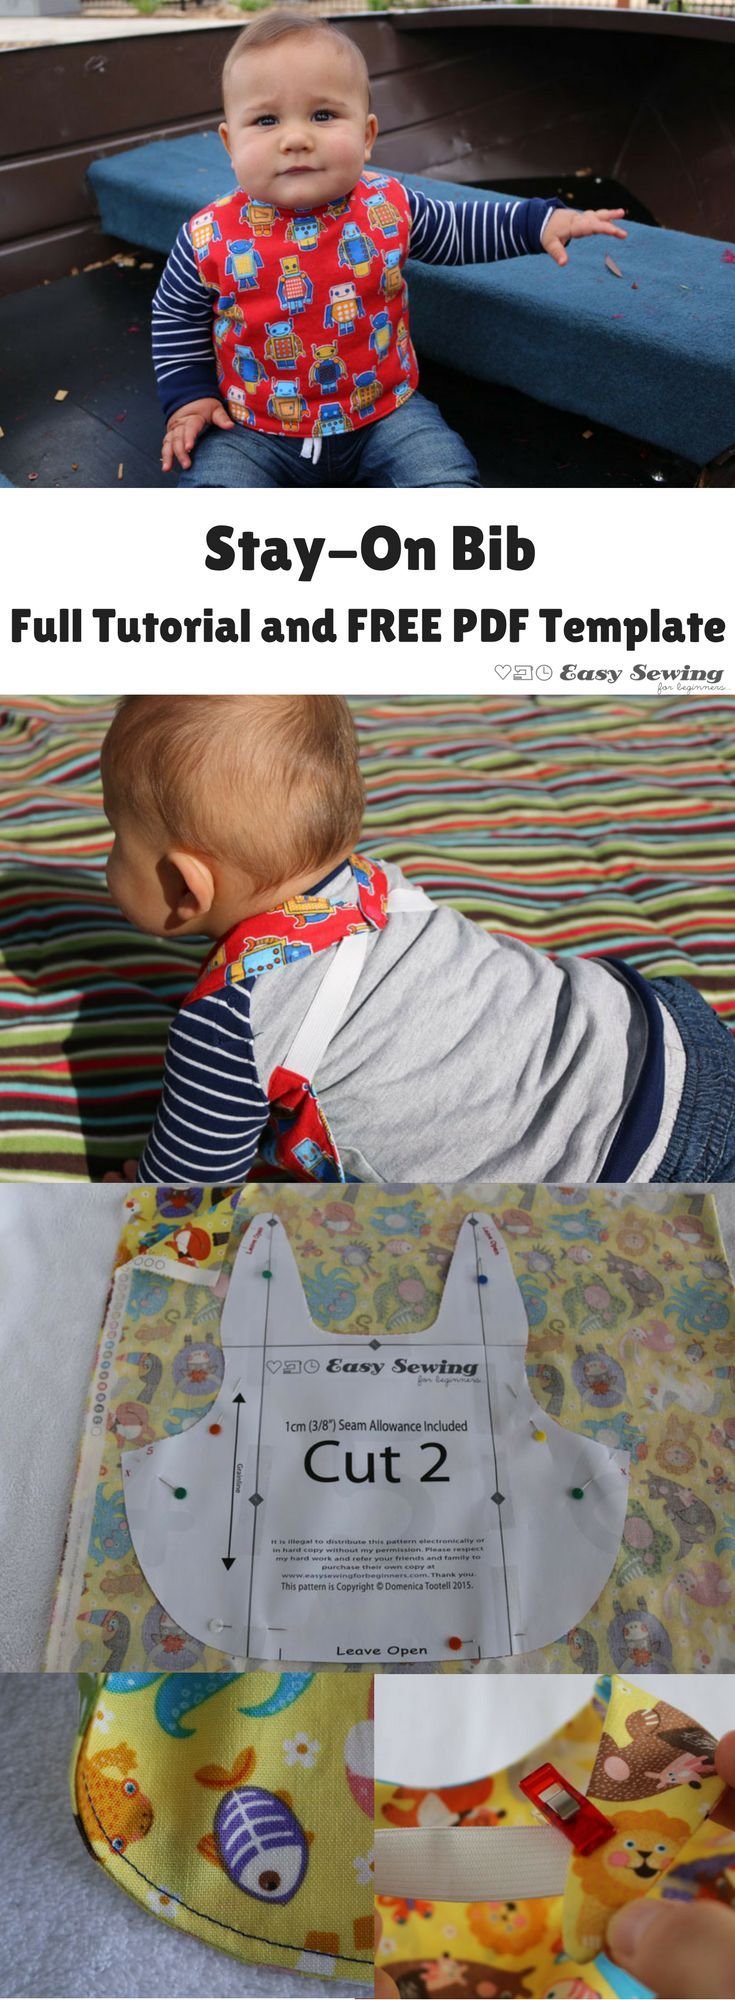 Stay-On Bib with full tutorial and FREE medium PDF template | Easy Sewing for Beginners